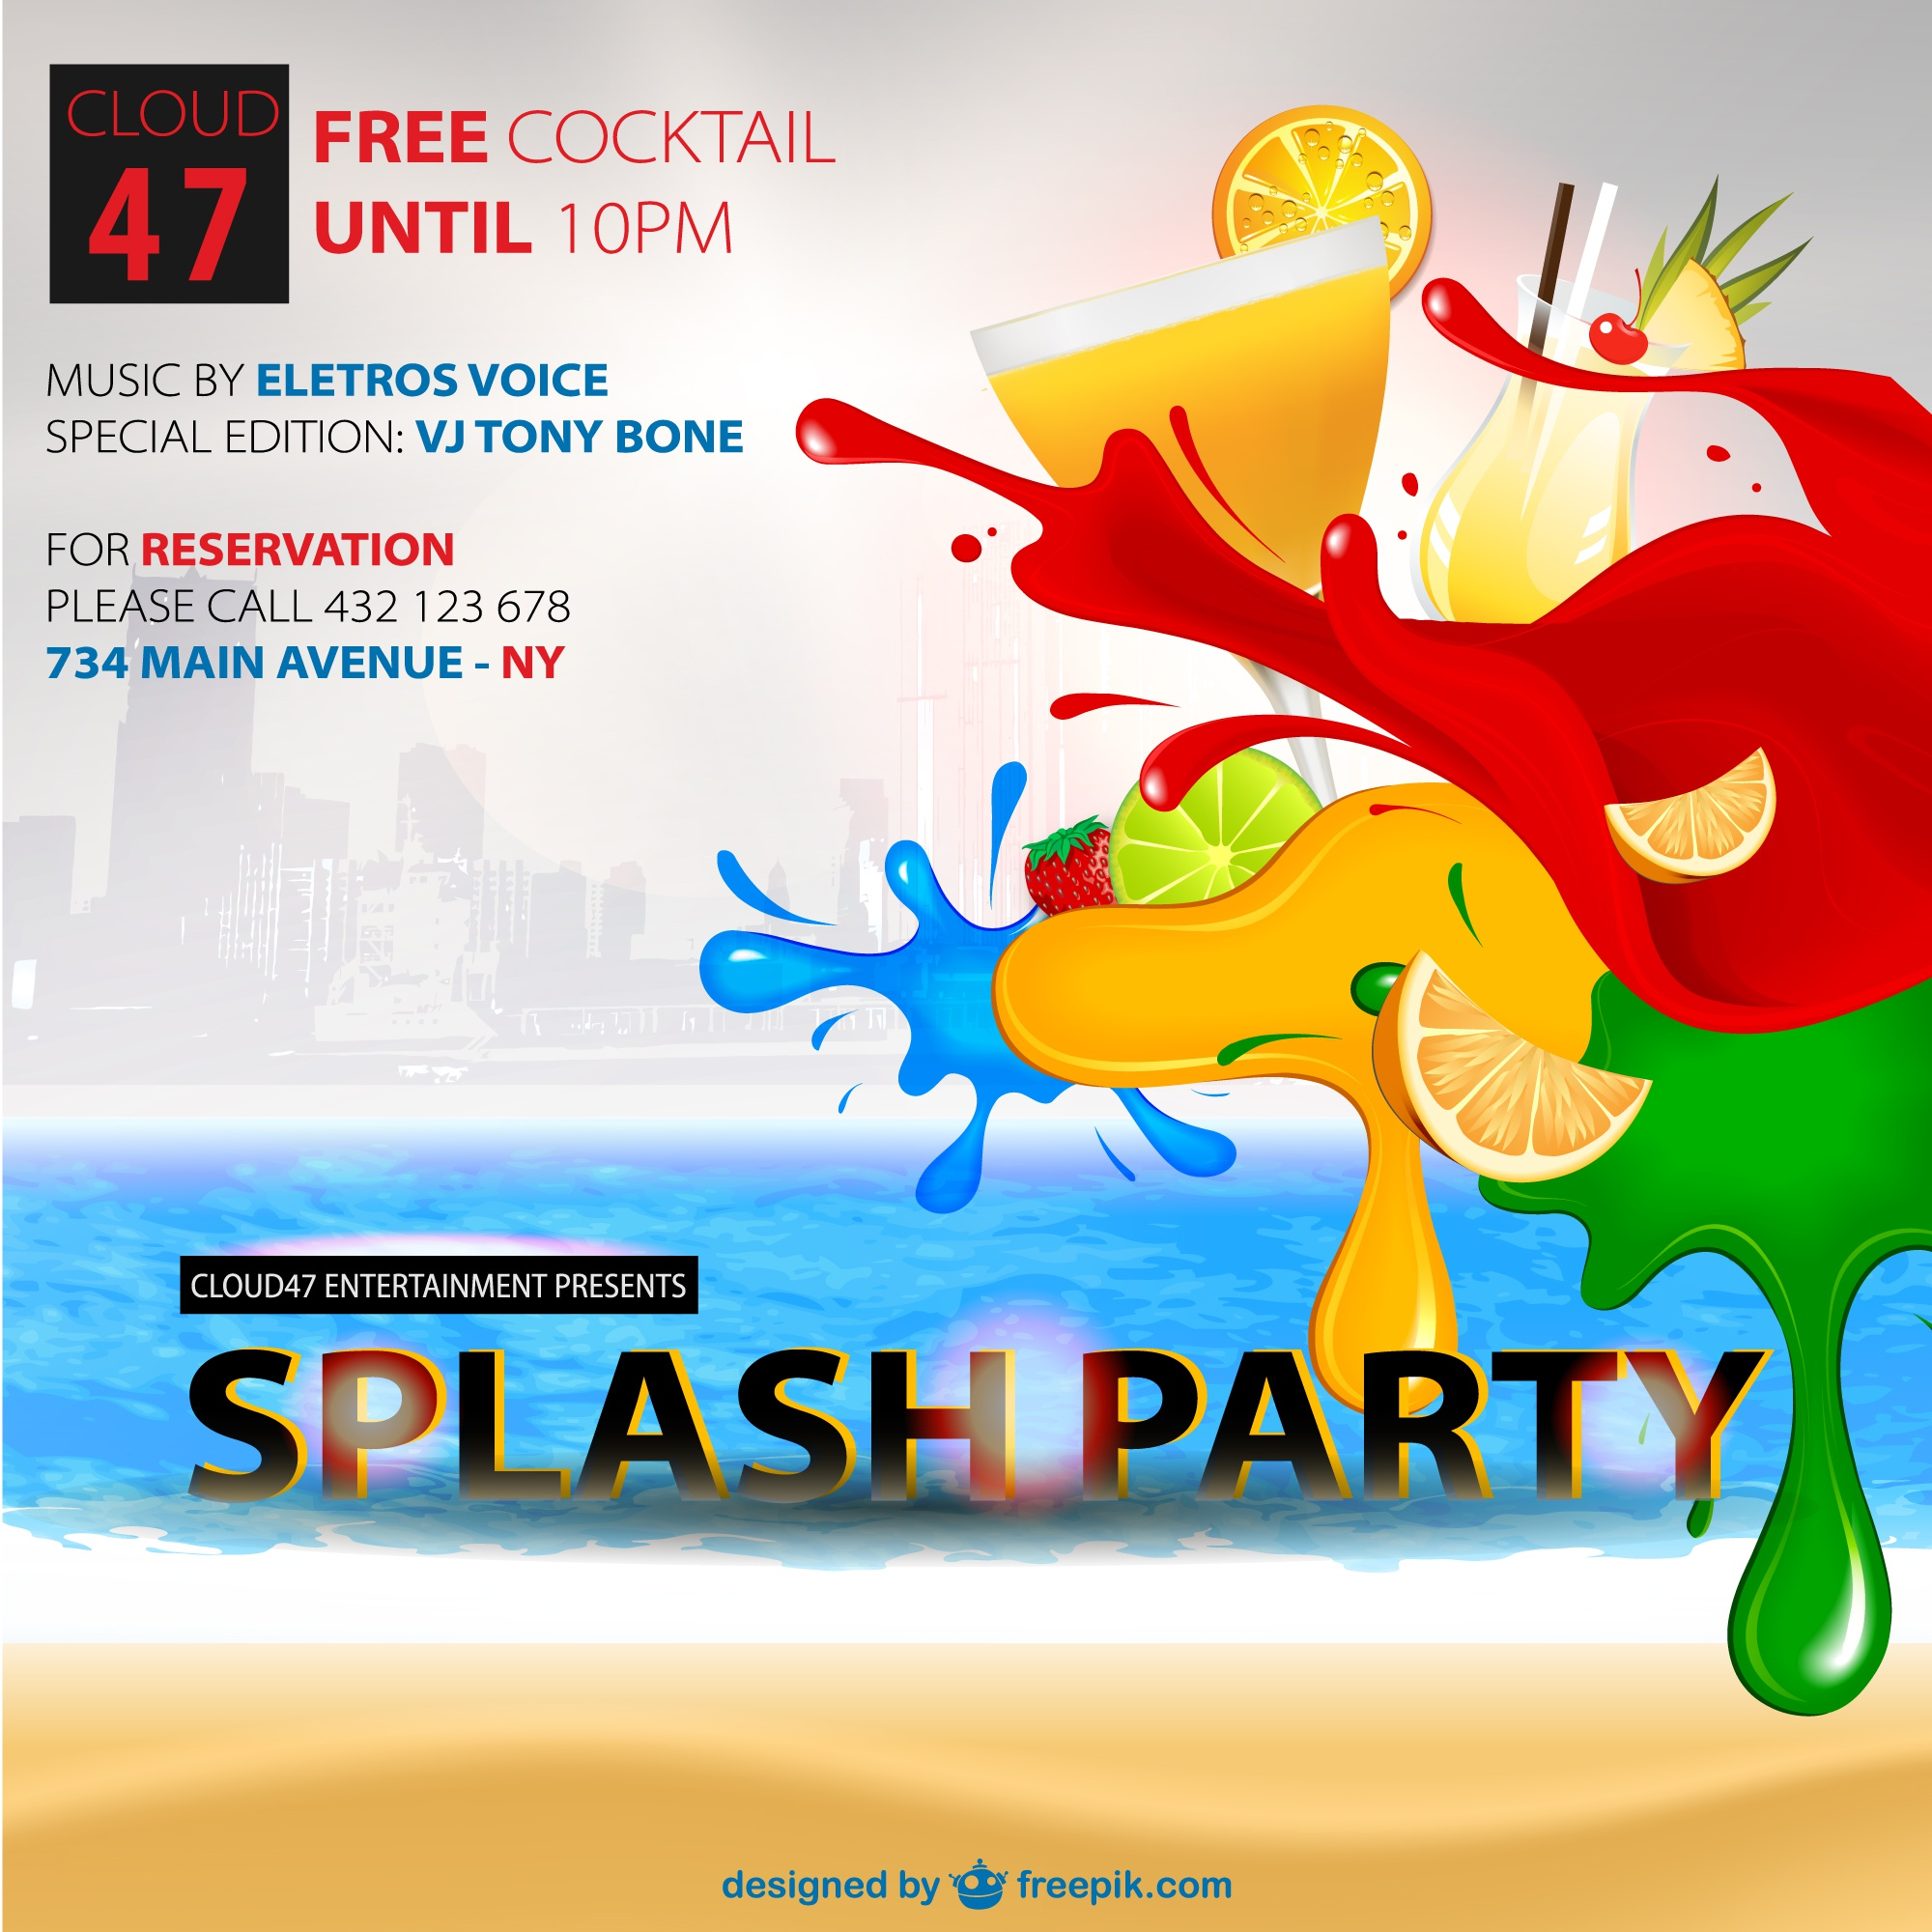 Free cockteils summer party vector poster